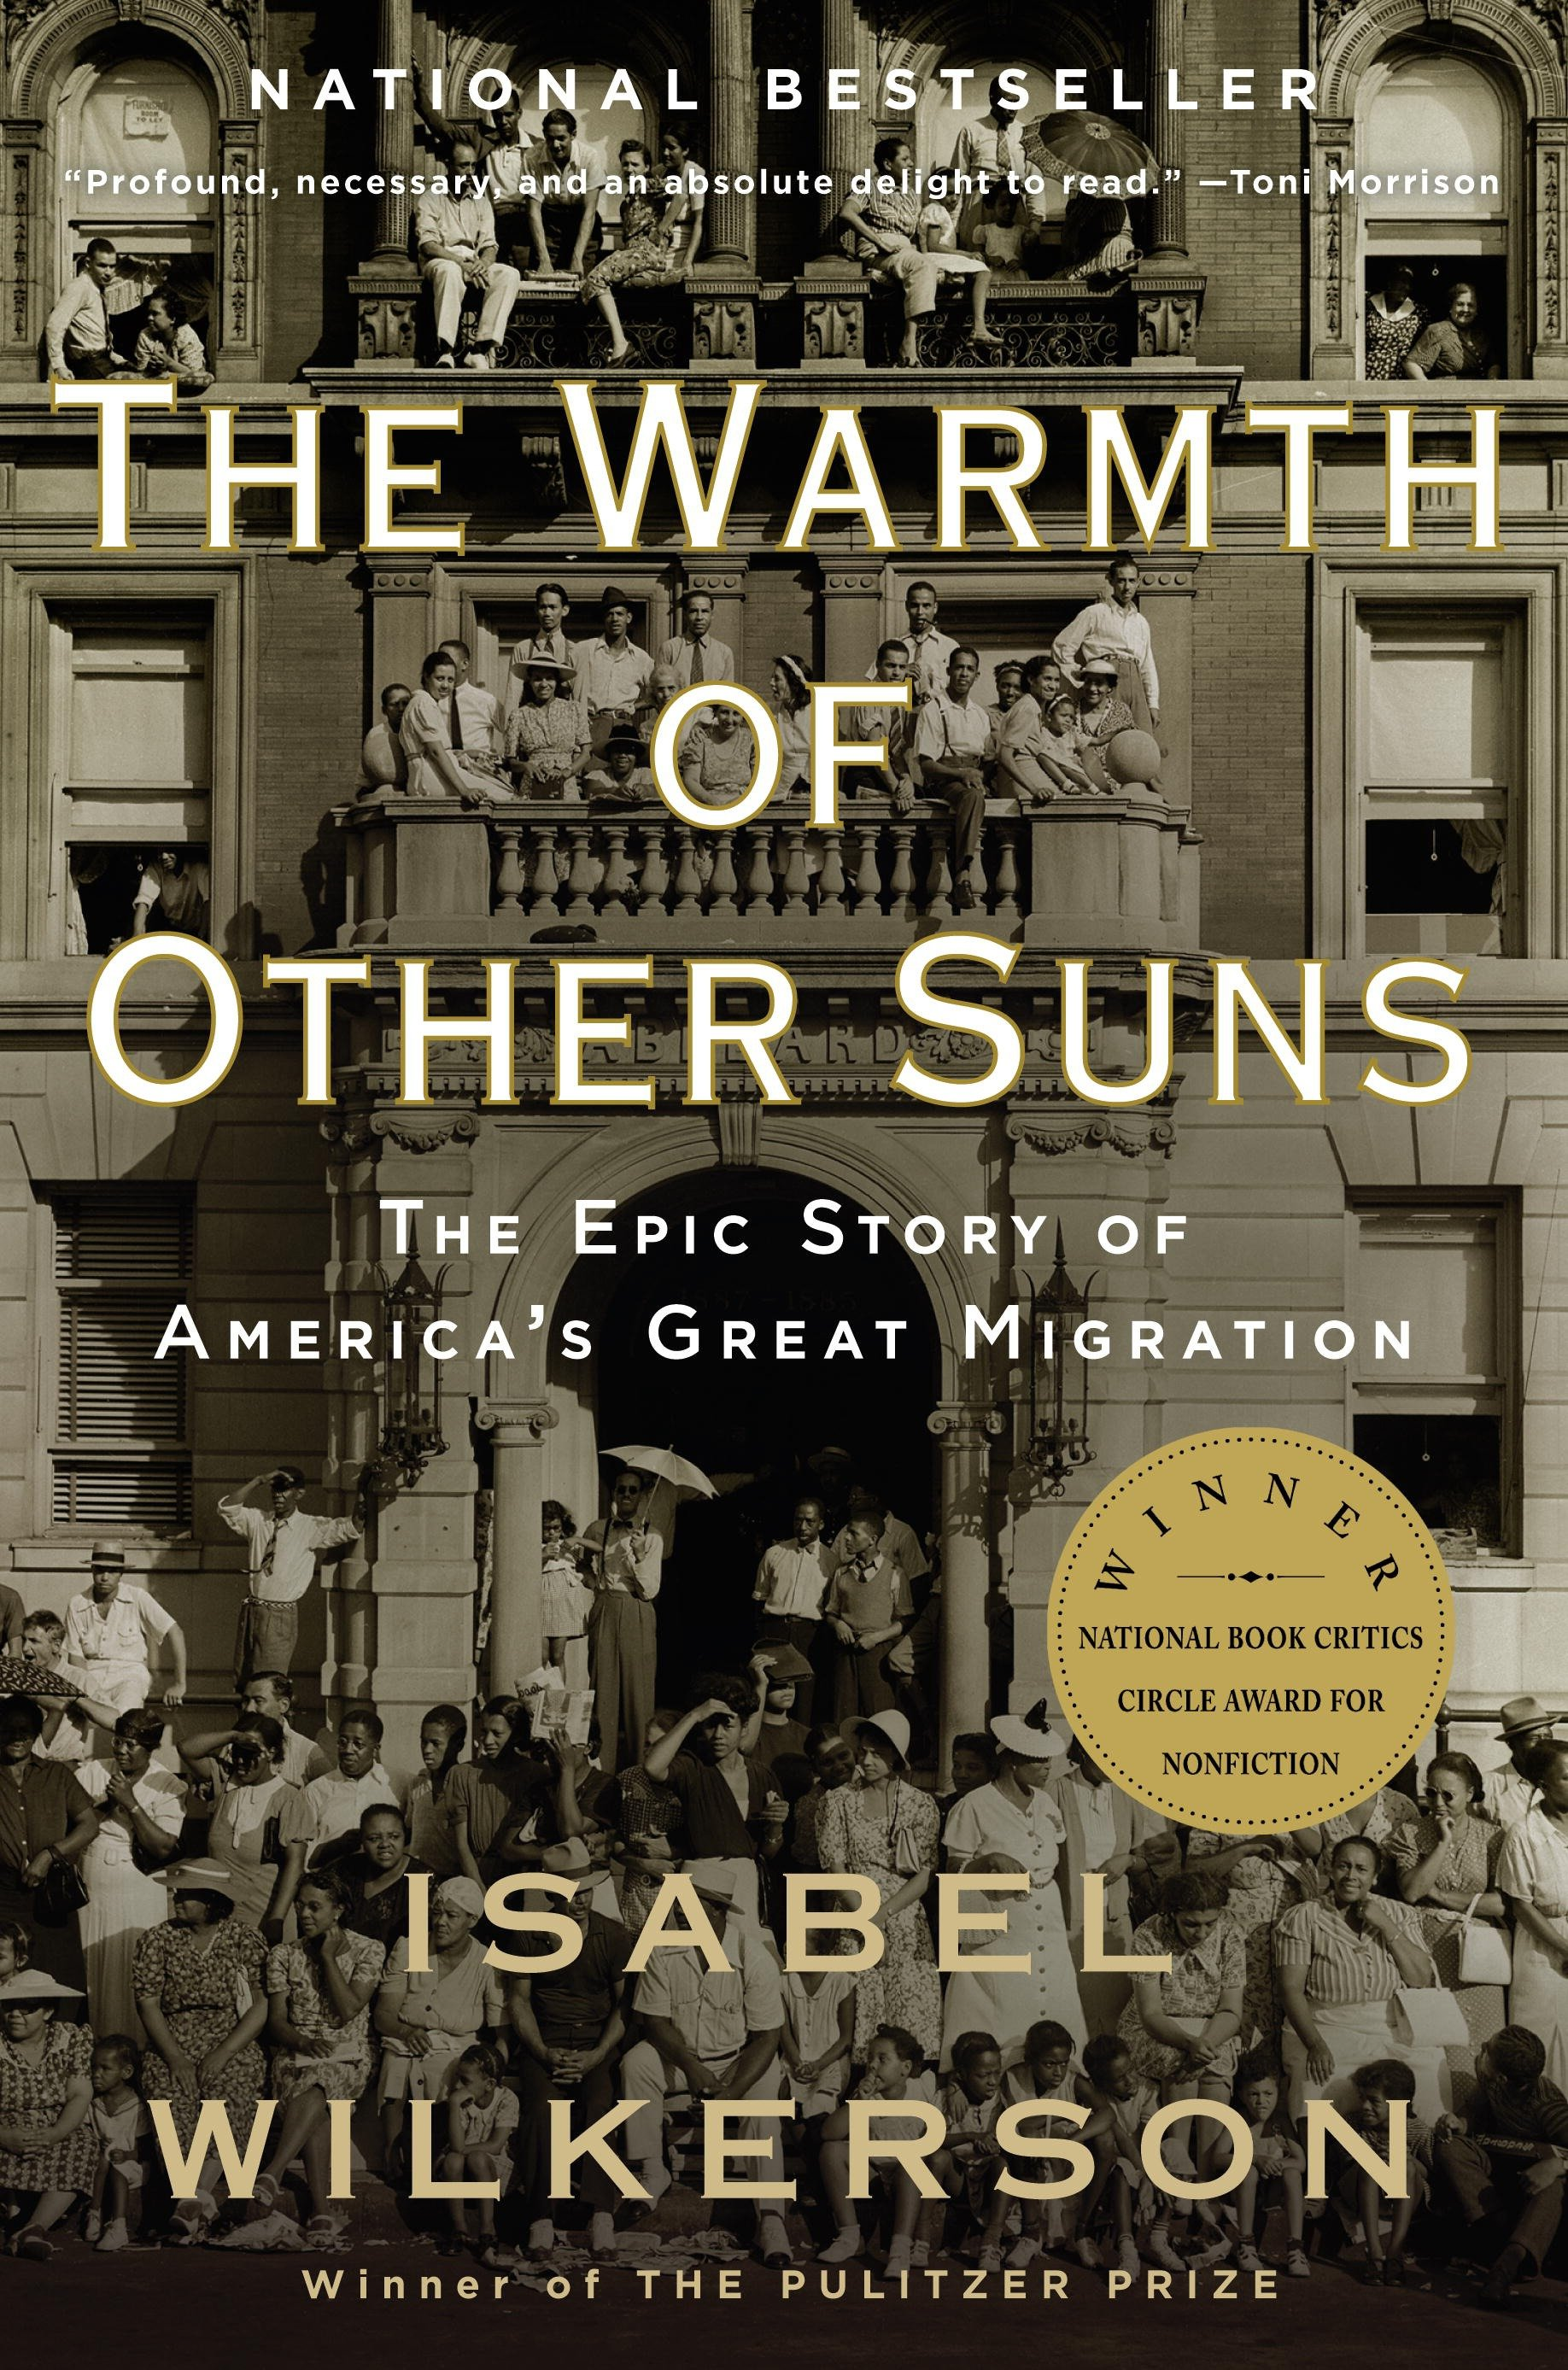 The Warmth of Other Suns [electronic resource] : The Epic Story of America's Great Migration